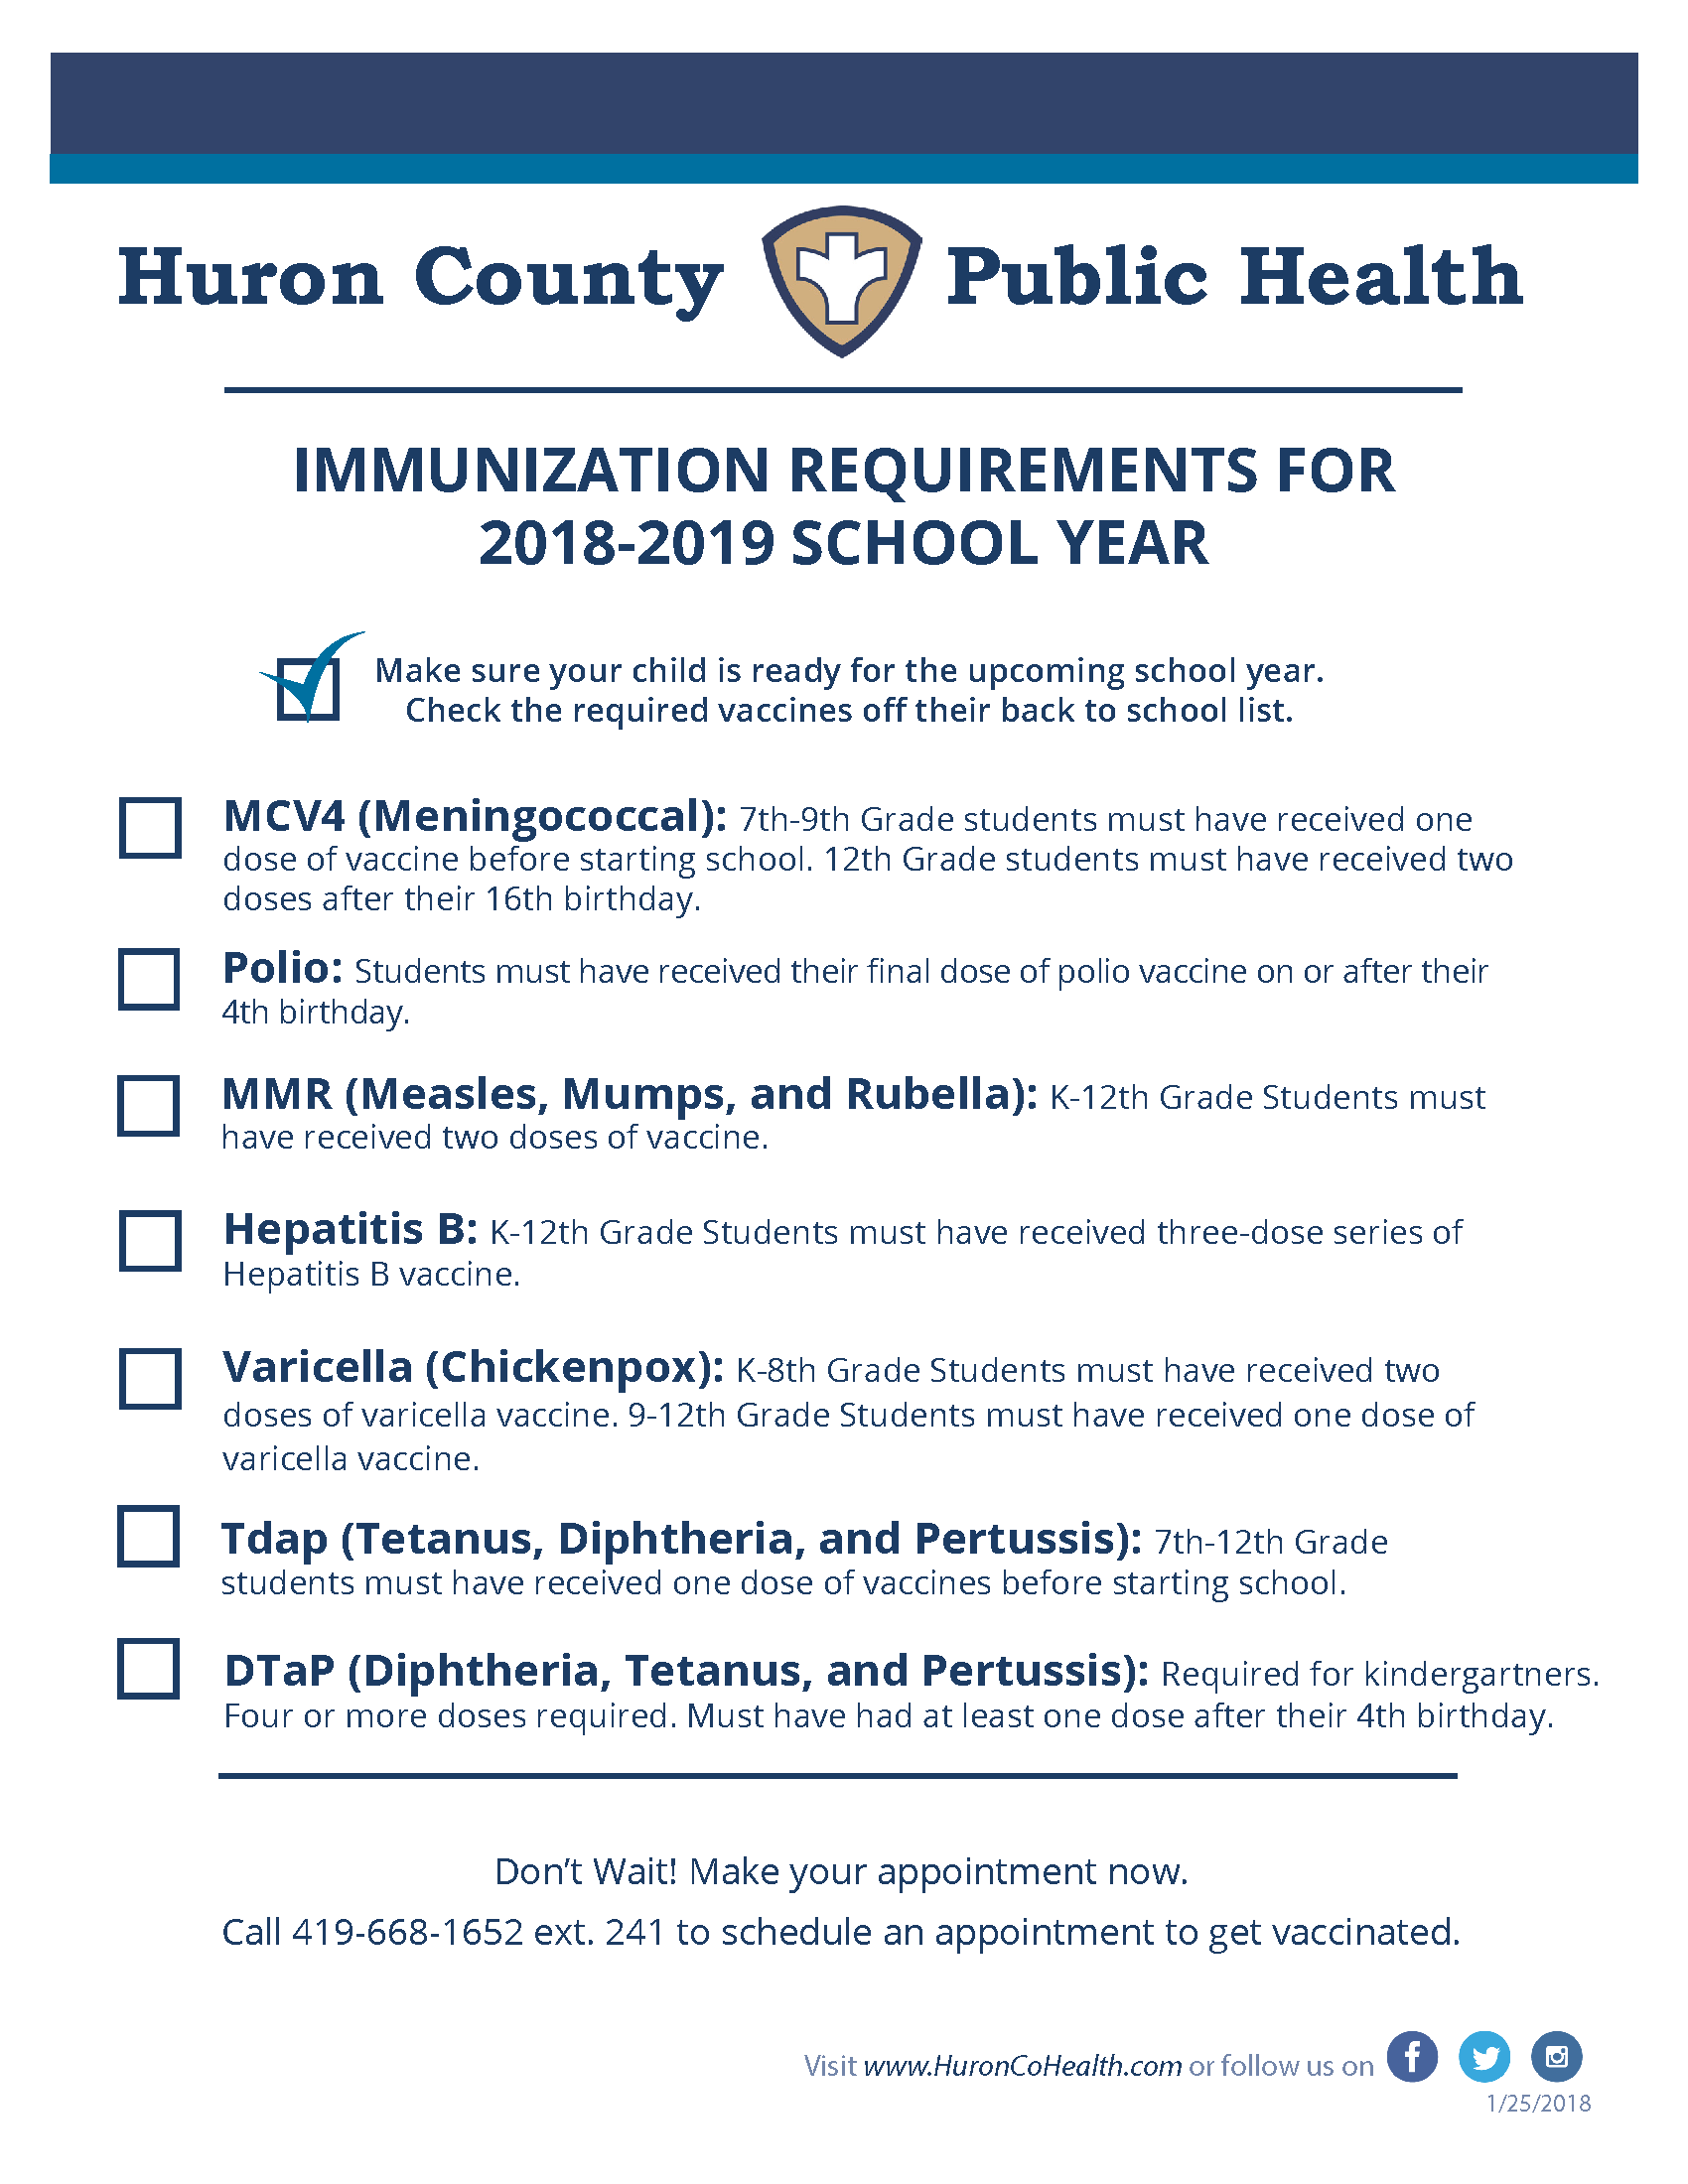 Immunization Requirements 2018-19